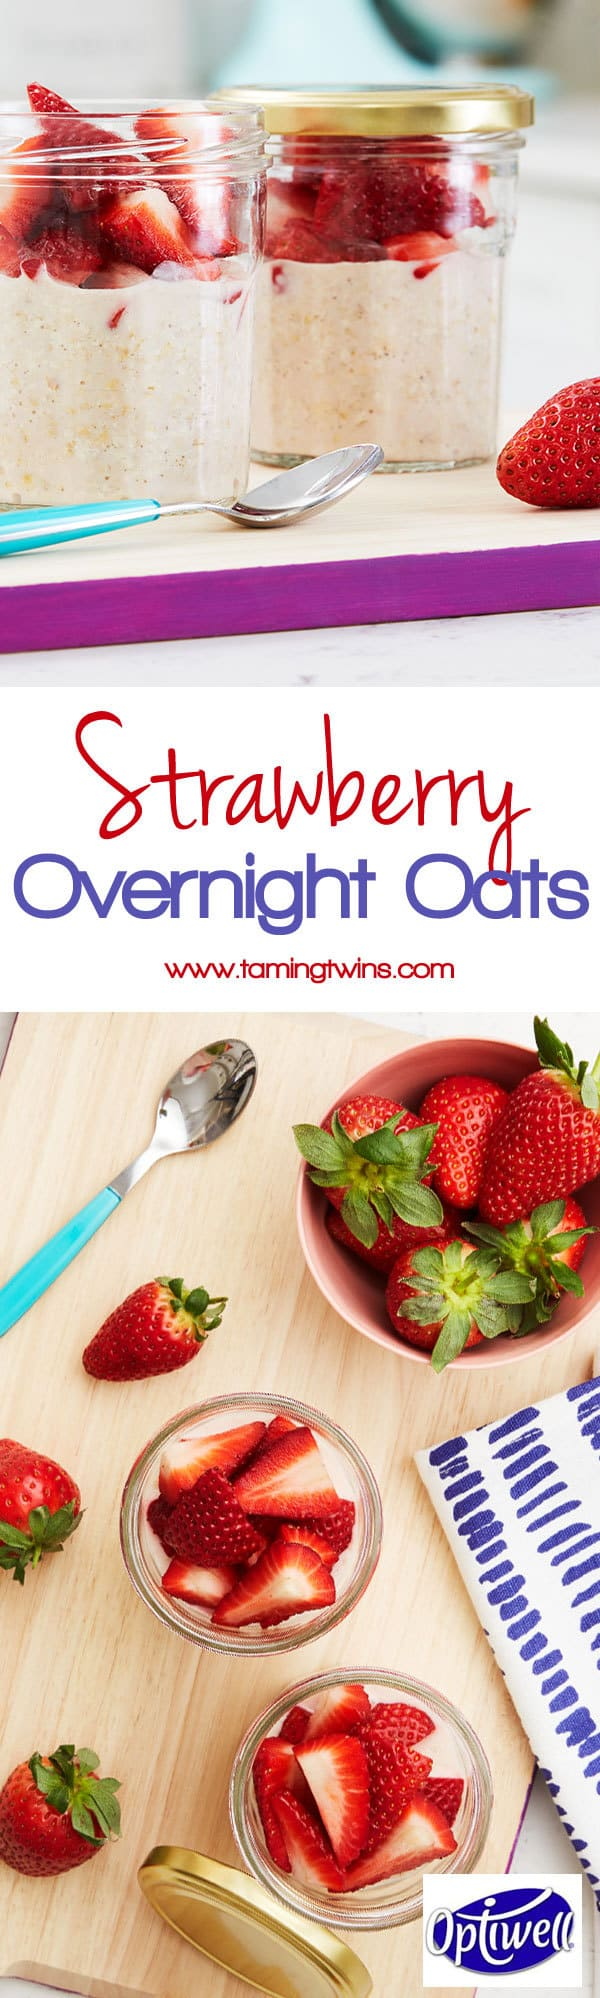 Overnight oats made with Optiwell yoghurt drink, for a higher protein breakfast, to keep you fuller for longer. Packed with strawberry and raspberry flavour. https://www.tamingtwins.com